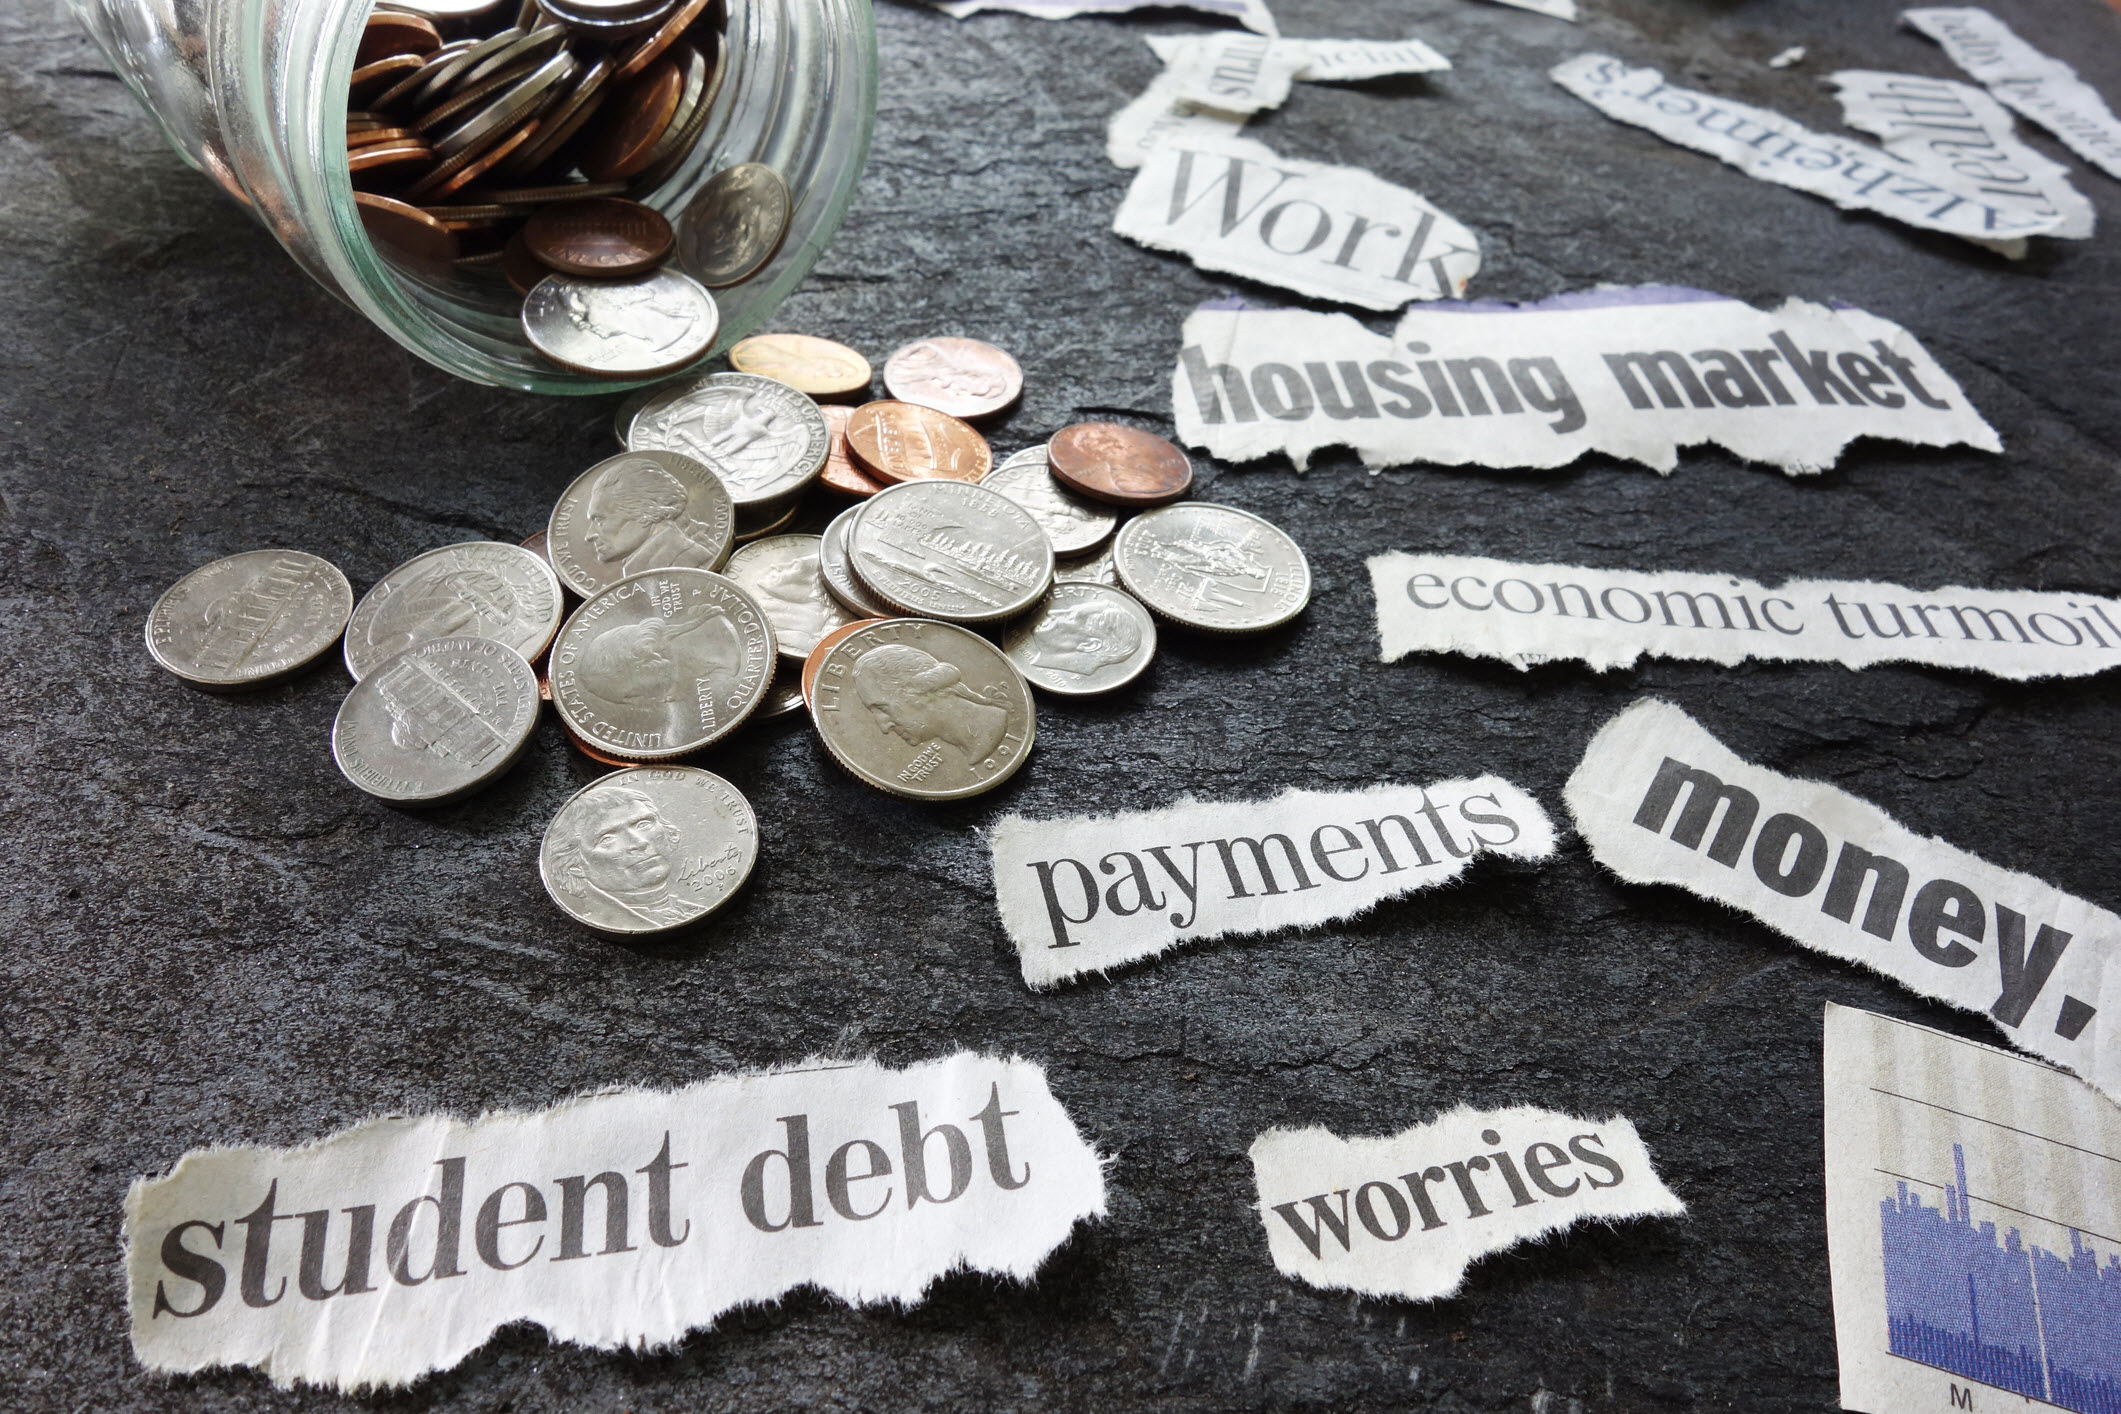 debts in collection can seriously affect credit